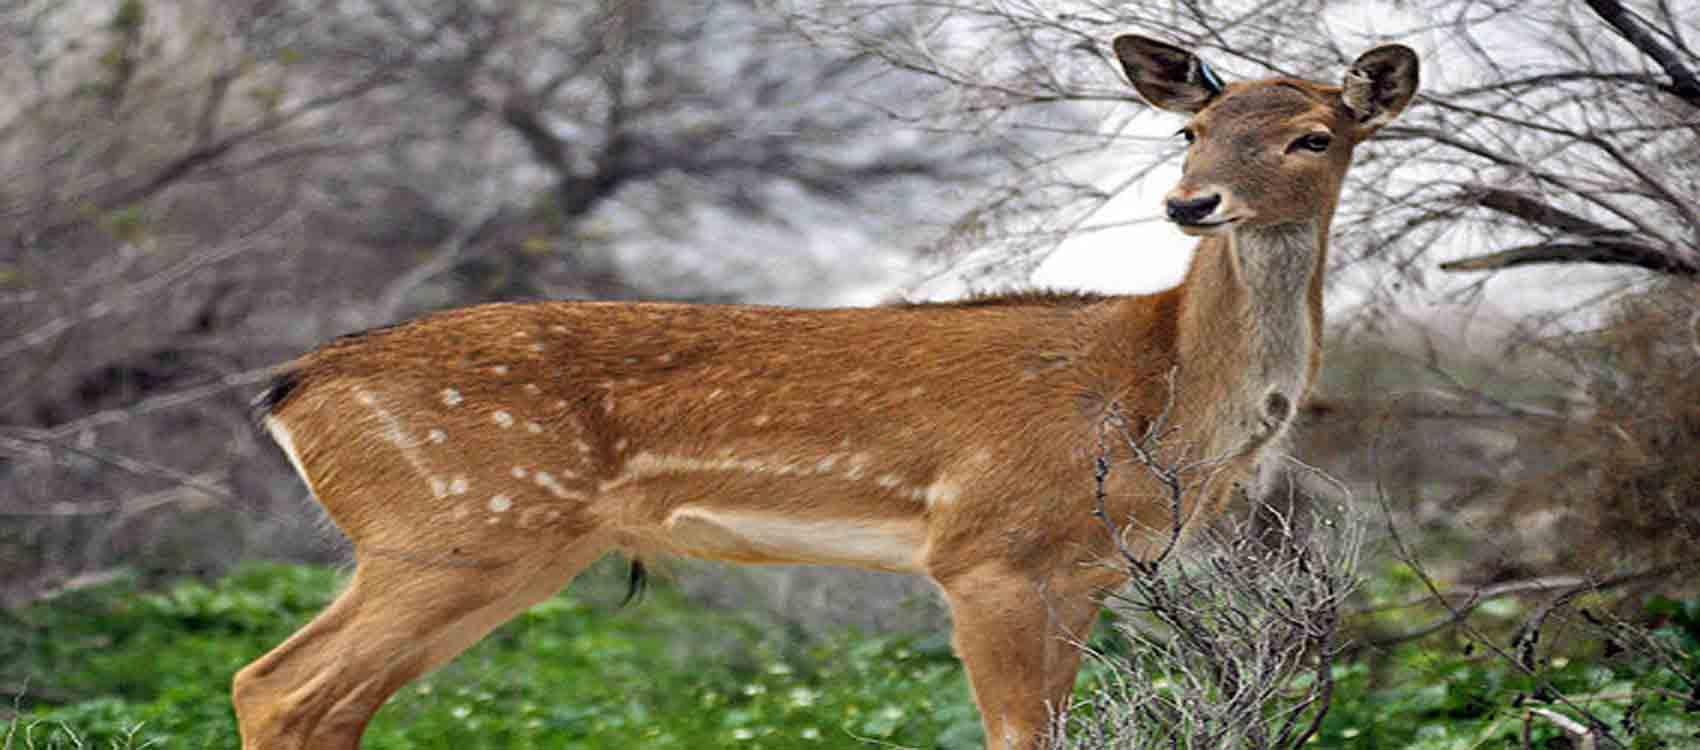 Persian fallow deer, Persian Deer,Fallow Deer,The Persian Fallow Deer,fallow deer of Persia, European deer